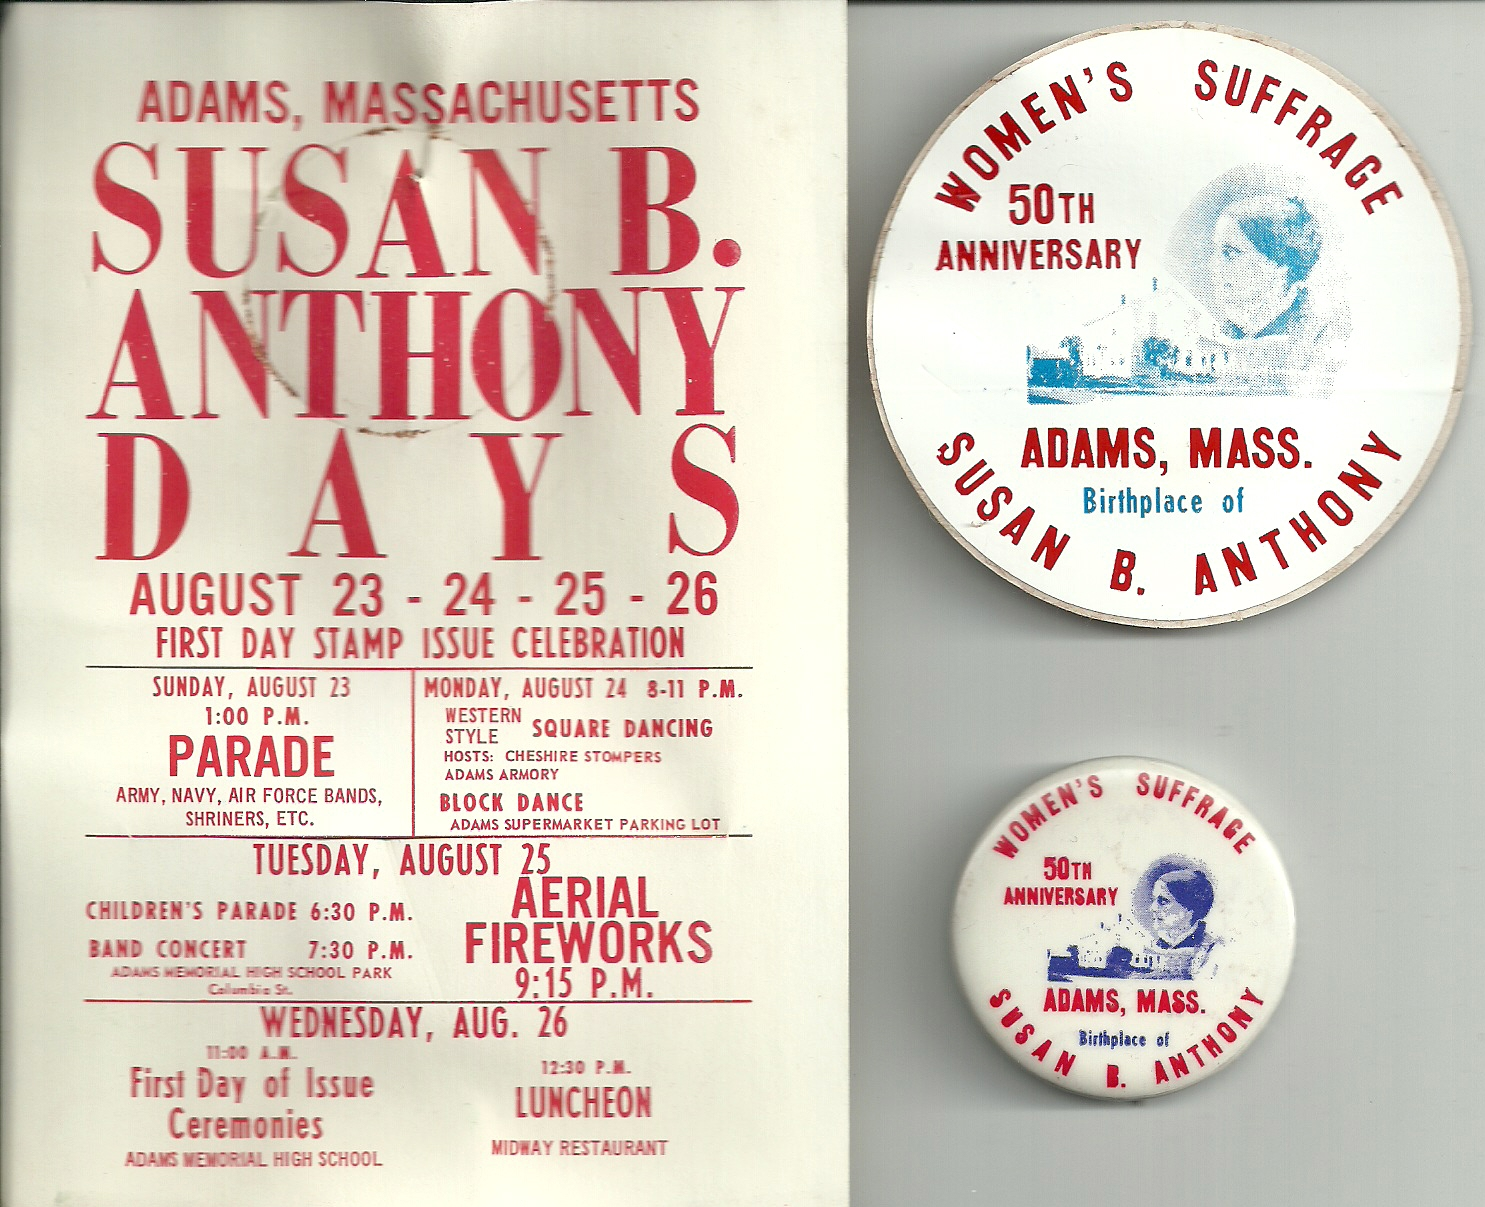 essay on susan b anthony Anthony was born february 15,1820 in adams massachusetts since susan was brought up in a quaker family with long activist traditions, she in her early life developed a sense of justice and moral zeal that helped susan's to accomplish her goals as a world reformer because of her decision to start.